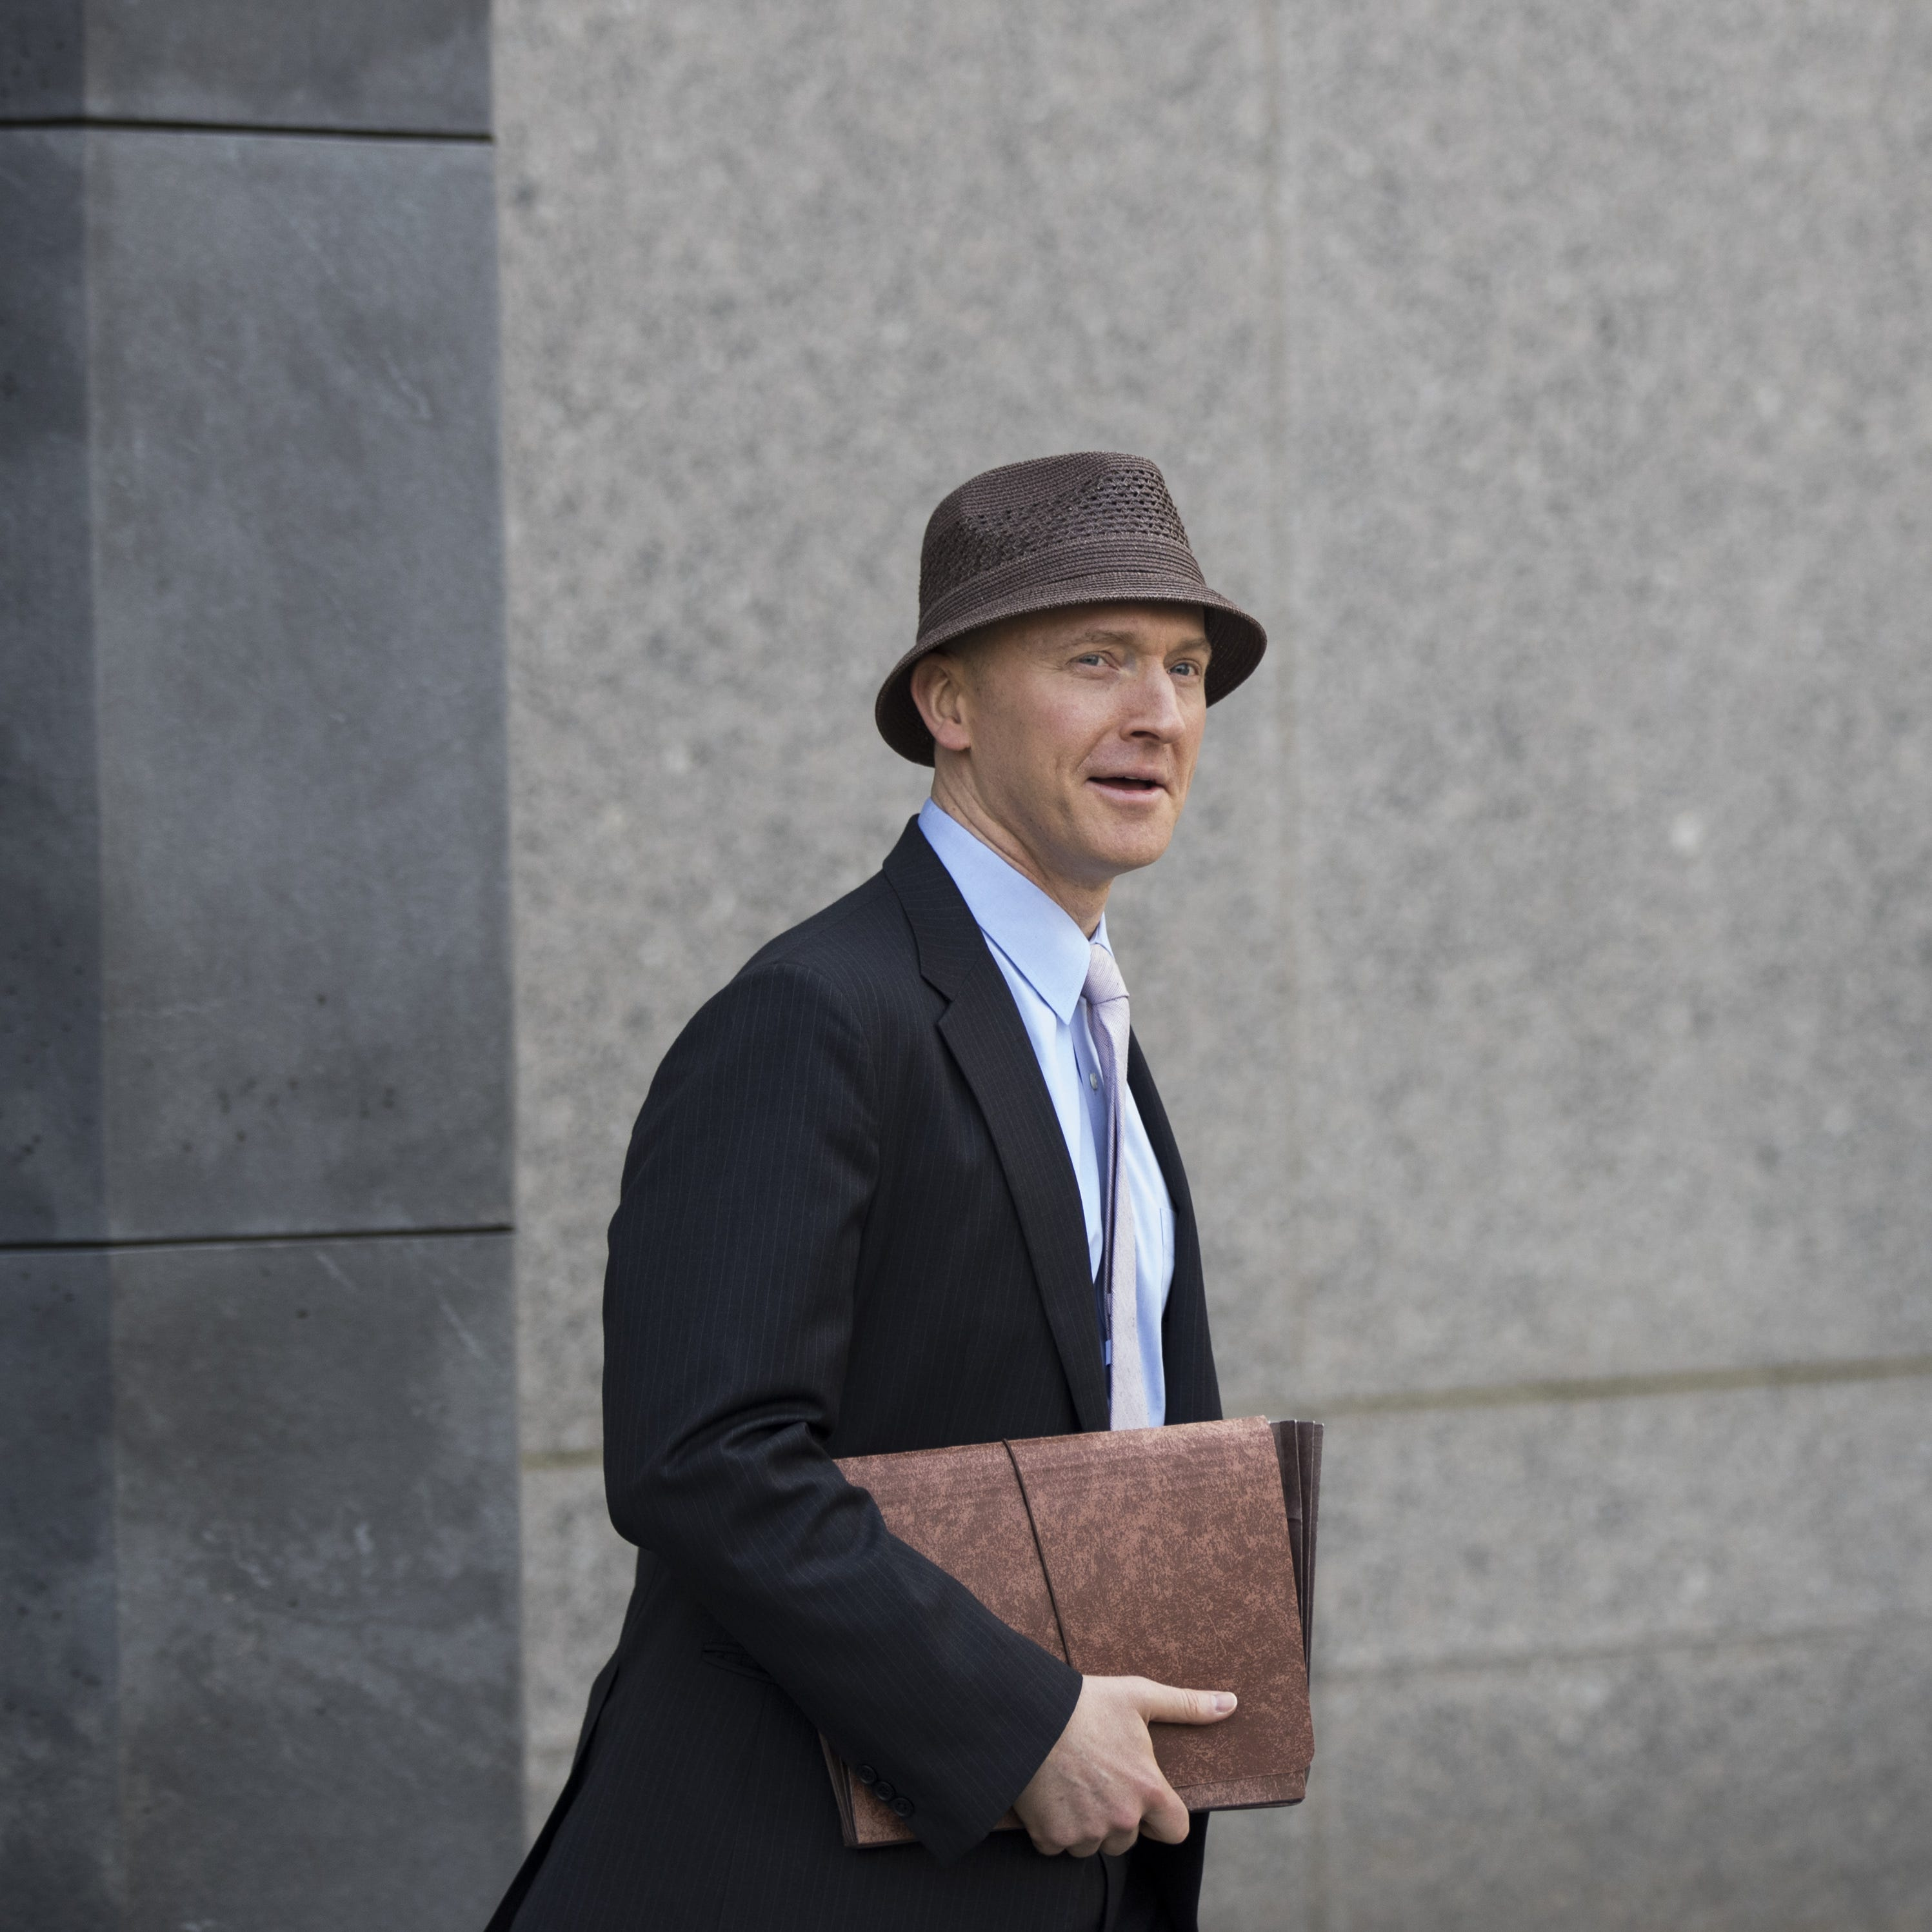 NEW YORK, NY - APRIL 16: Carter Page arrives at the courthouse on the same day as a hearing regarding Michael Cohen, longtime personal lawyer and confidante for President Donald Trump, at the United States District Court Southern District of New York, April 16, 2018 in New York City.  Cohen and lawyers representing President Trump are asking the court to block Justice Department officials from reading documents and materials related to Cohen's relationship with President Trump that they believe should be protected by attorney-client privilege. Officials with the FBI, armed with a search warrant, raided Cohen's office and two private residences last week.  (Photo by Drew Angerer/Getty Images) ORG XMIT: 775154122 ORIG FILE ID: 947159344